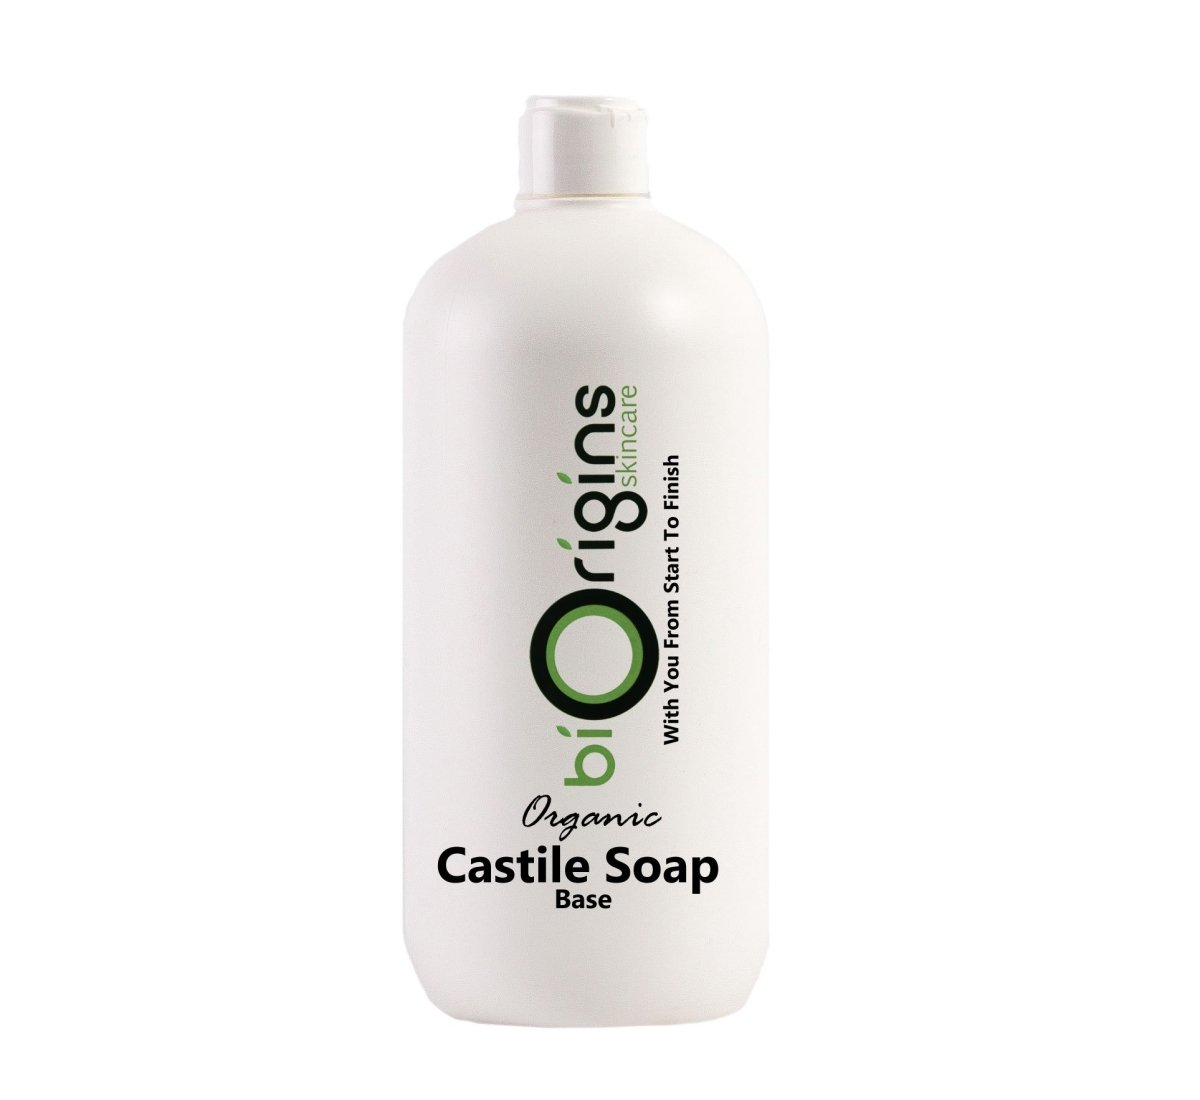 Castile Liquid Soap Organic - Mystic Moments UK